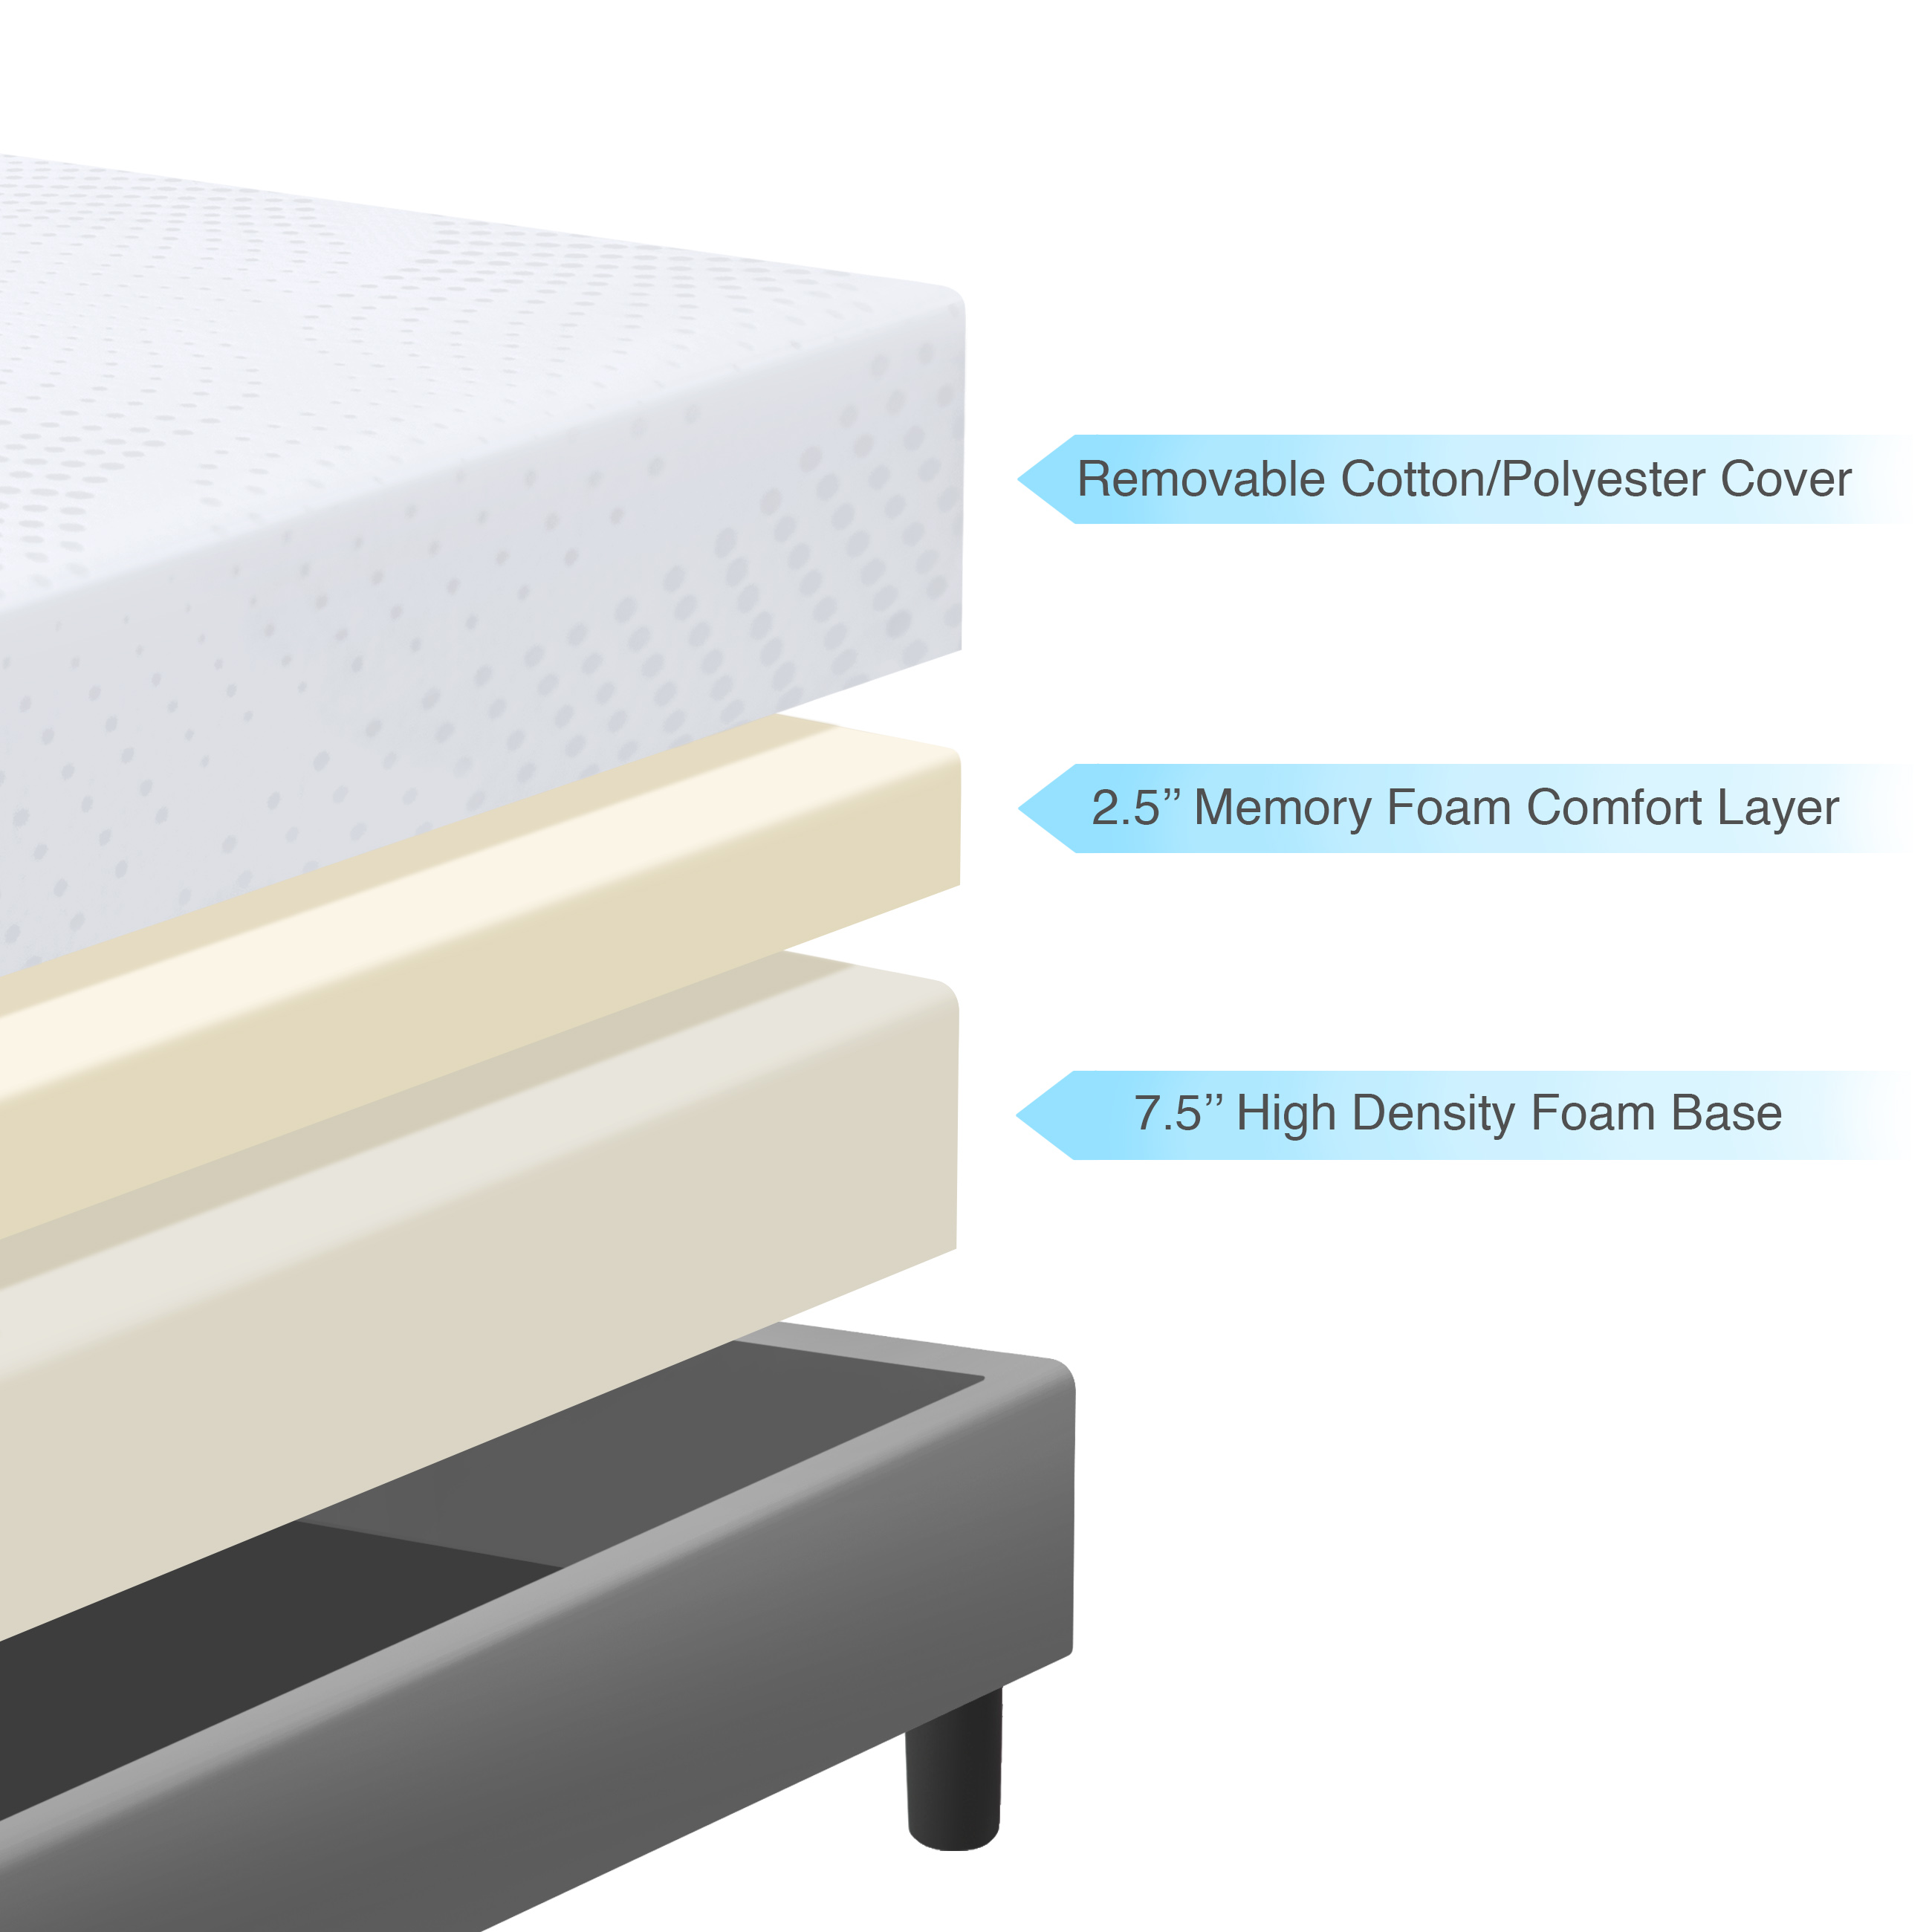 Best Foam Matress Best Choice Products 10in Full Size Dual Layered Medium Firm Memory Foam Mattress W Open Cell Cooling Certipur Us Certified Foam Removable Cover